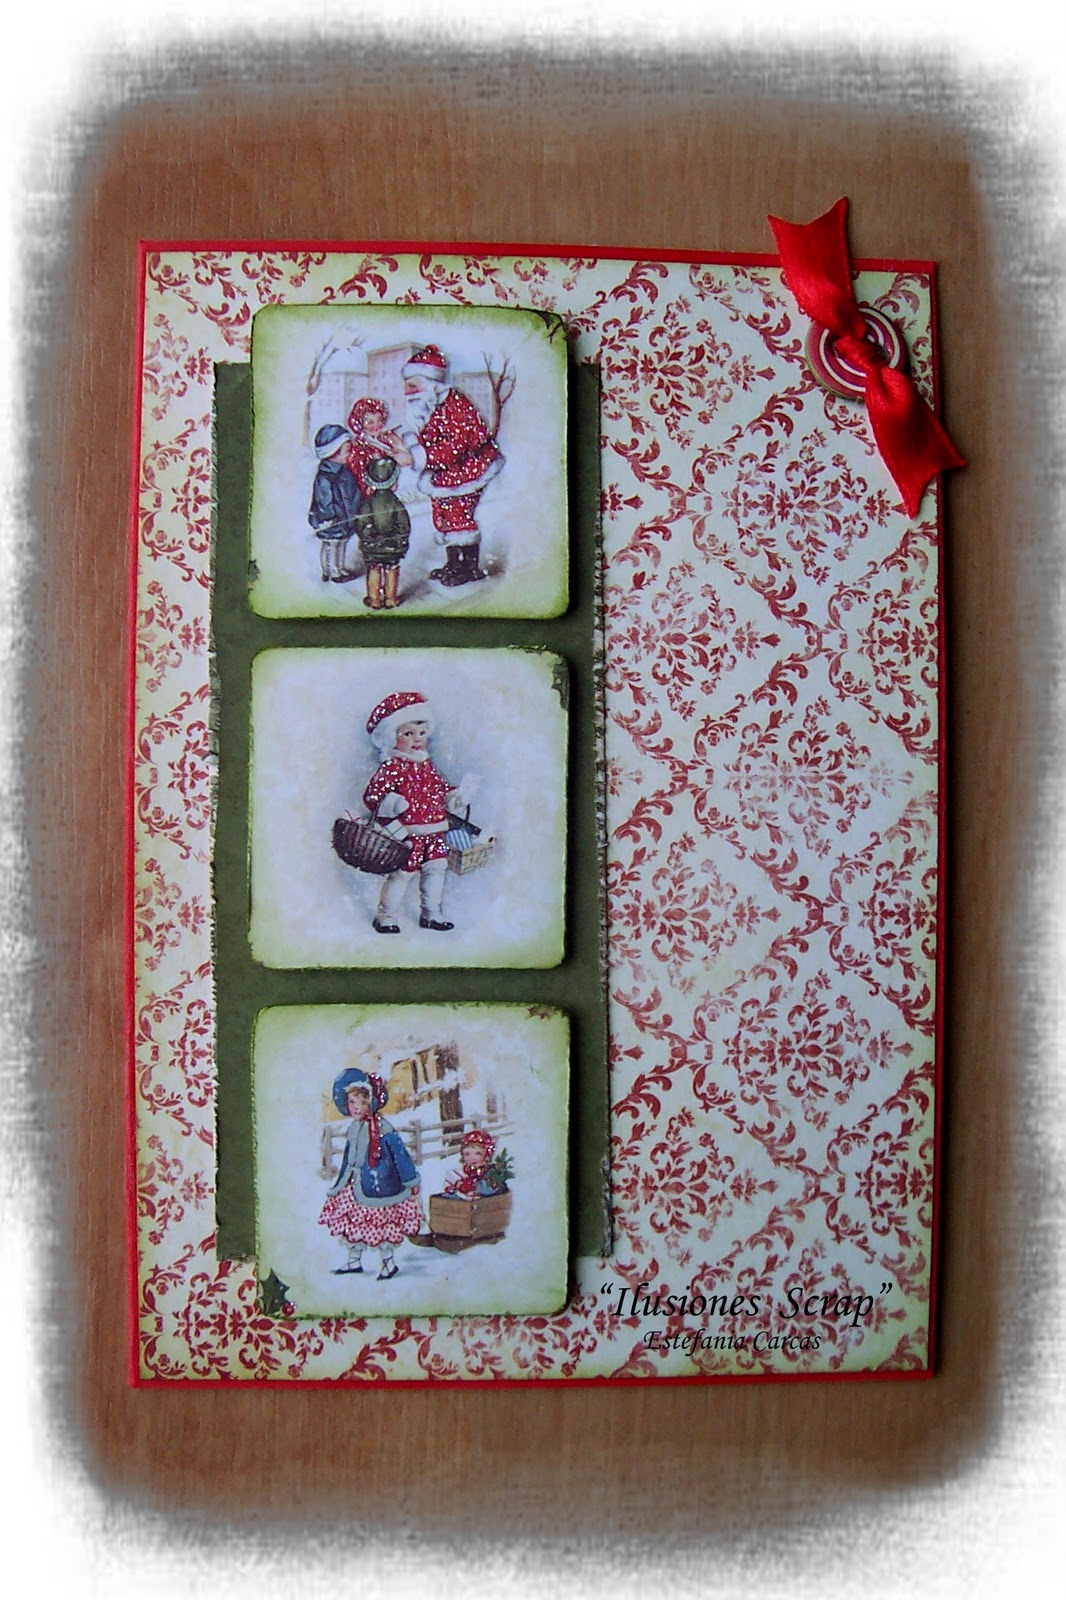 Ilusiones scrap tarjetas navide as colecci n vintage for Coleccion vintage